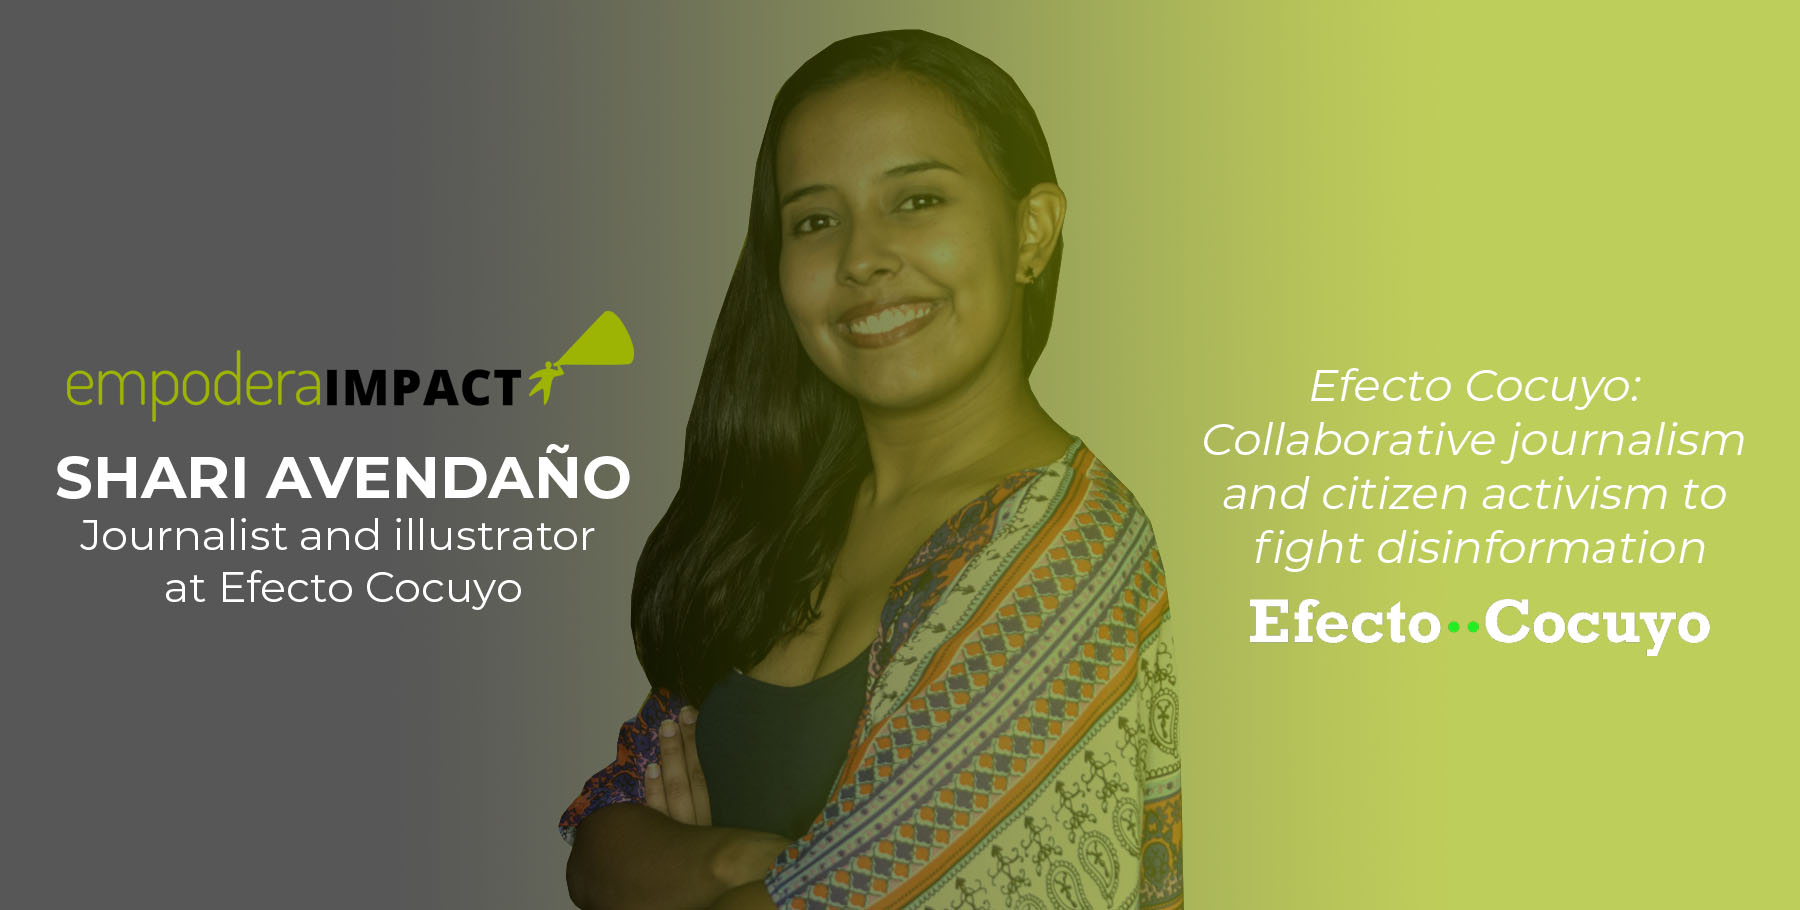 Efecto Cocuyo: Collaborative journalism and citizen activism against disinformation